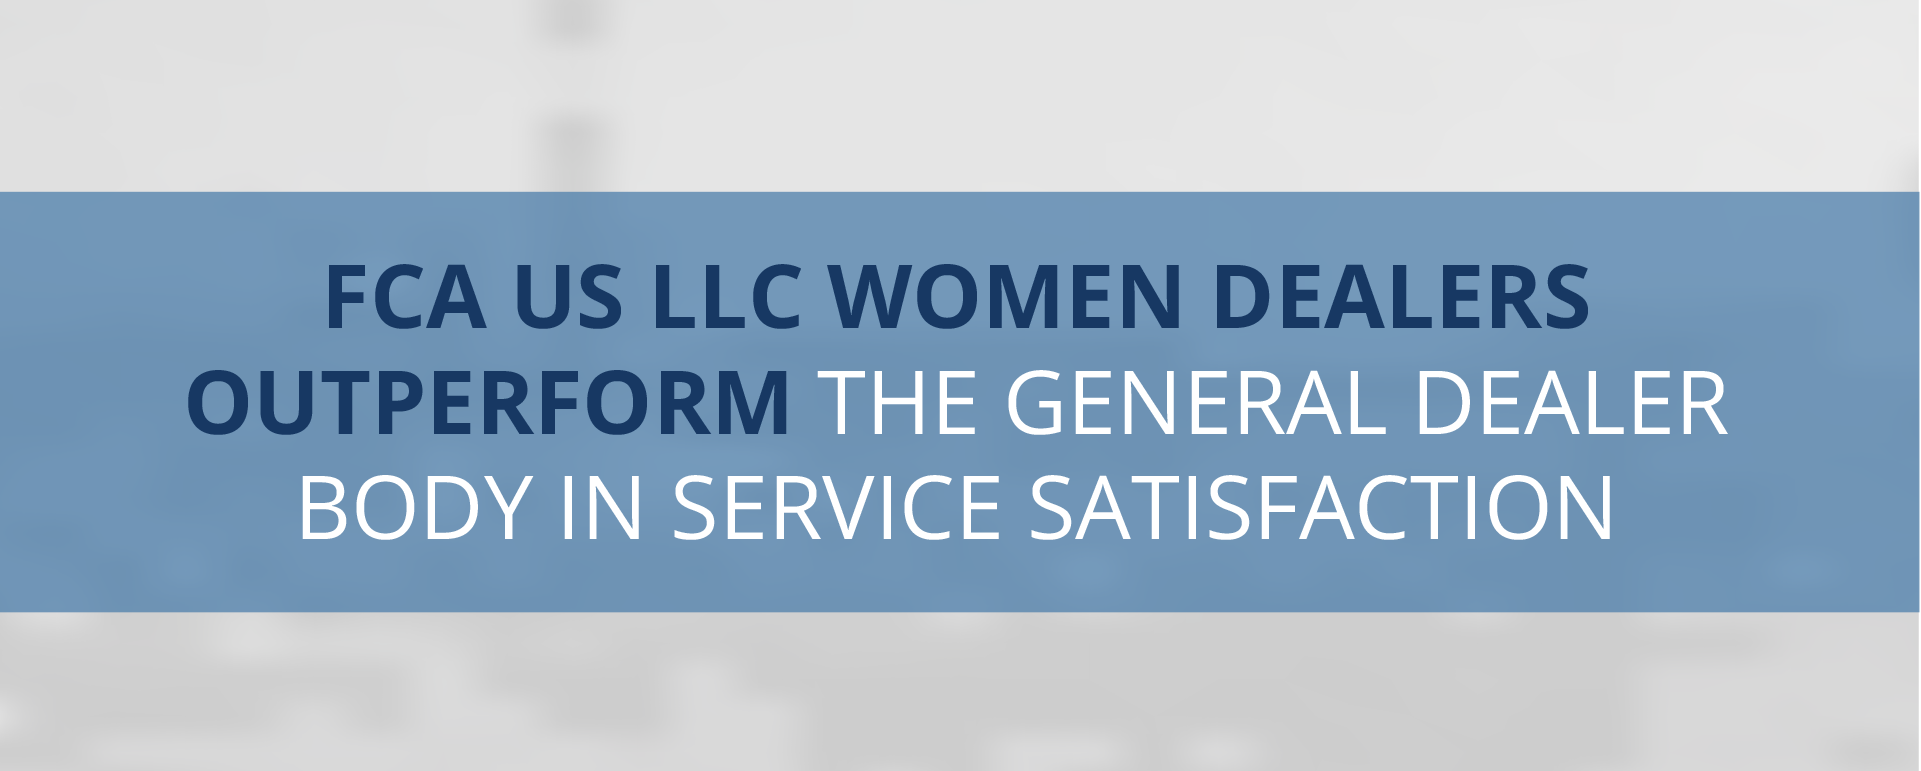 FCA women dealers outperform the general dealer body in service satisfaction